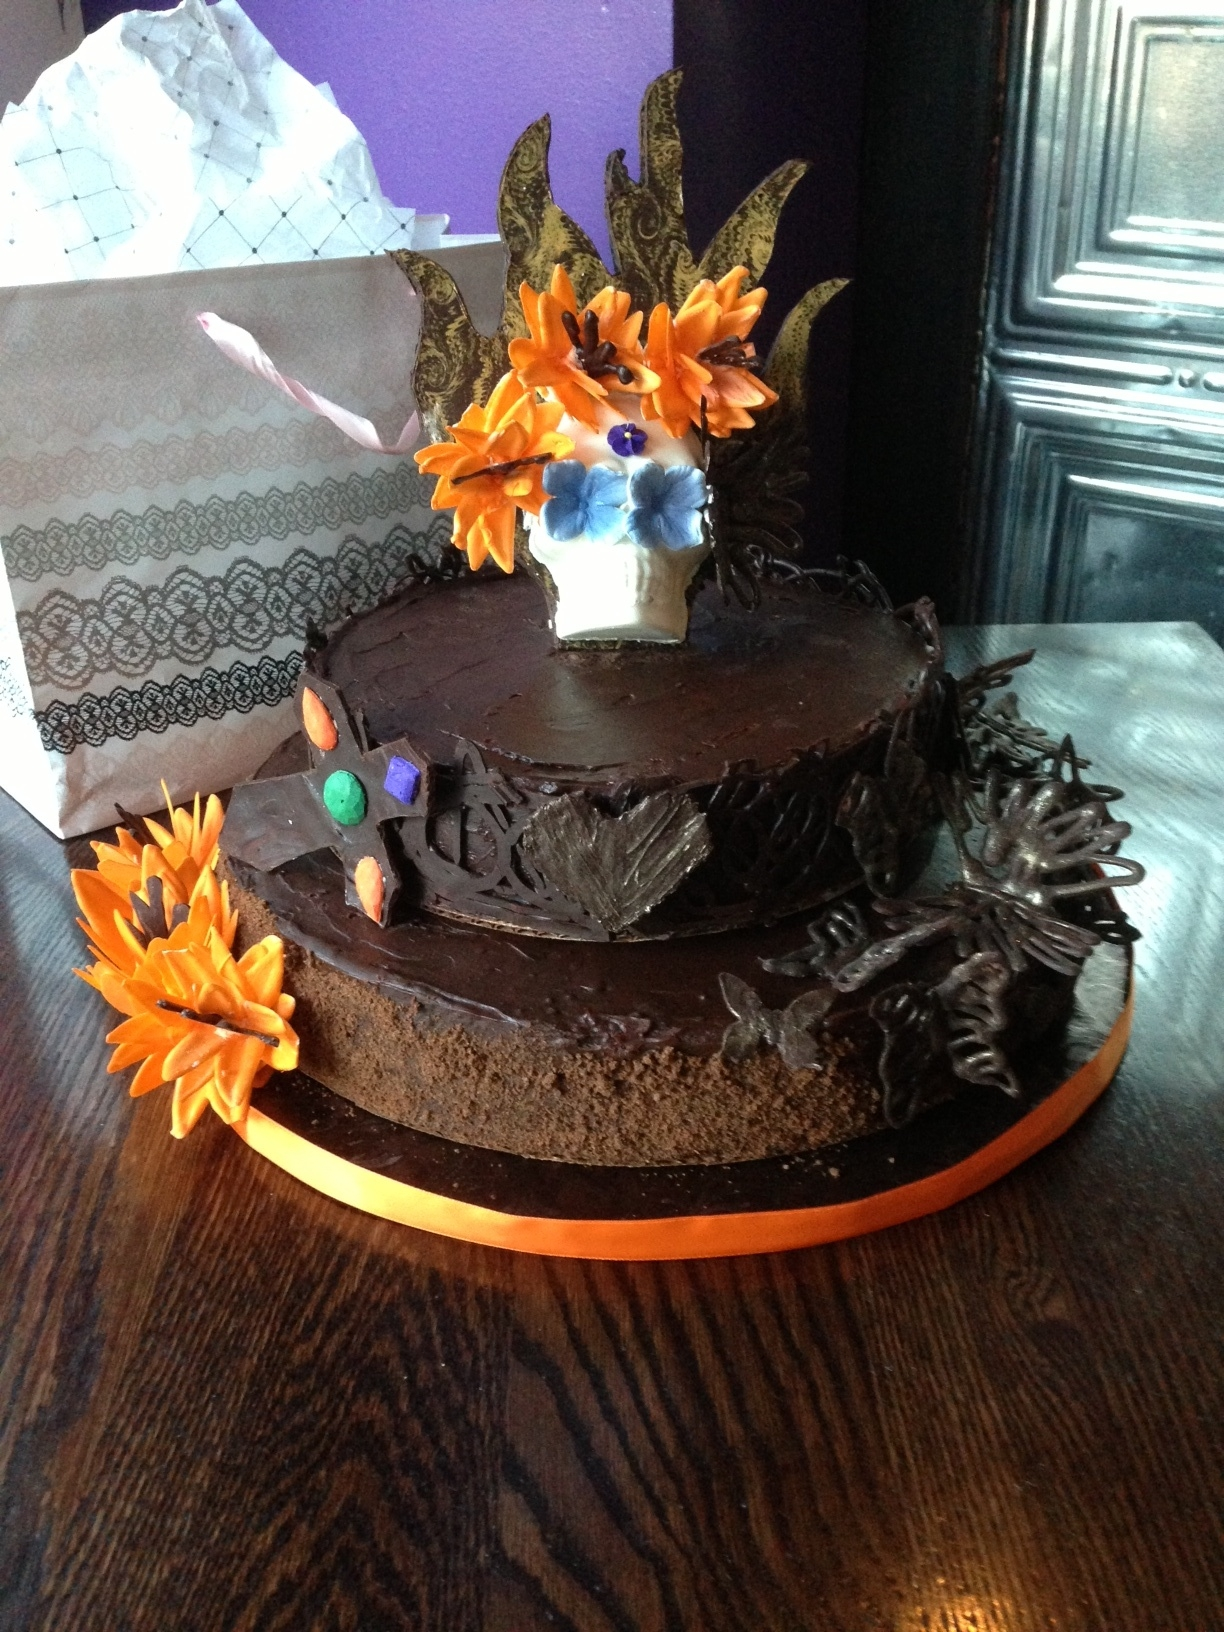 Day Of The Dead Chocolate Tequila Mousse Cake Day of the dead. Chocolate Tequila mousse cake.